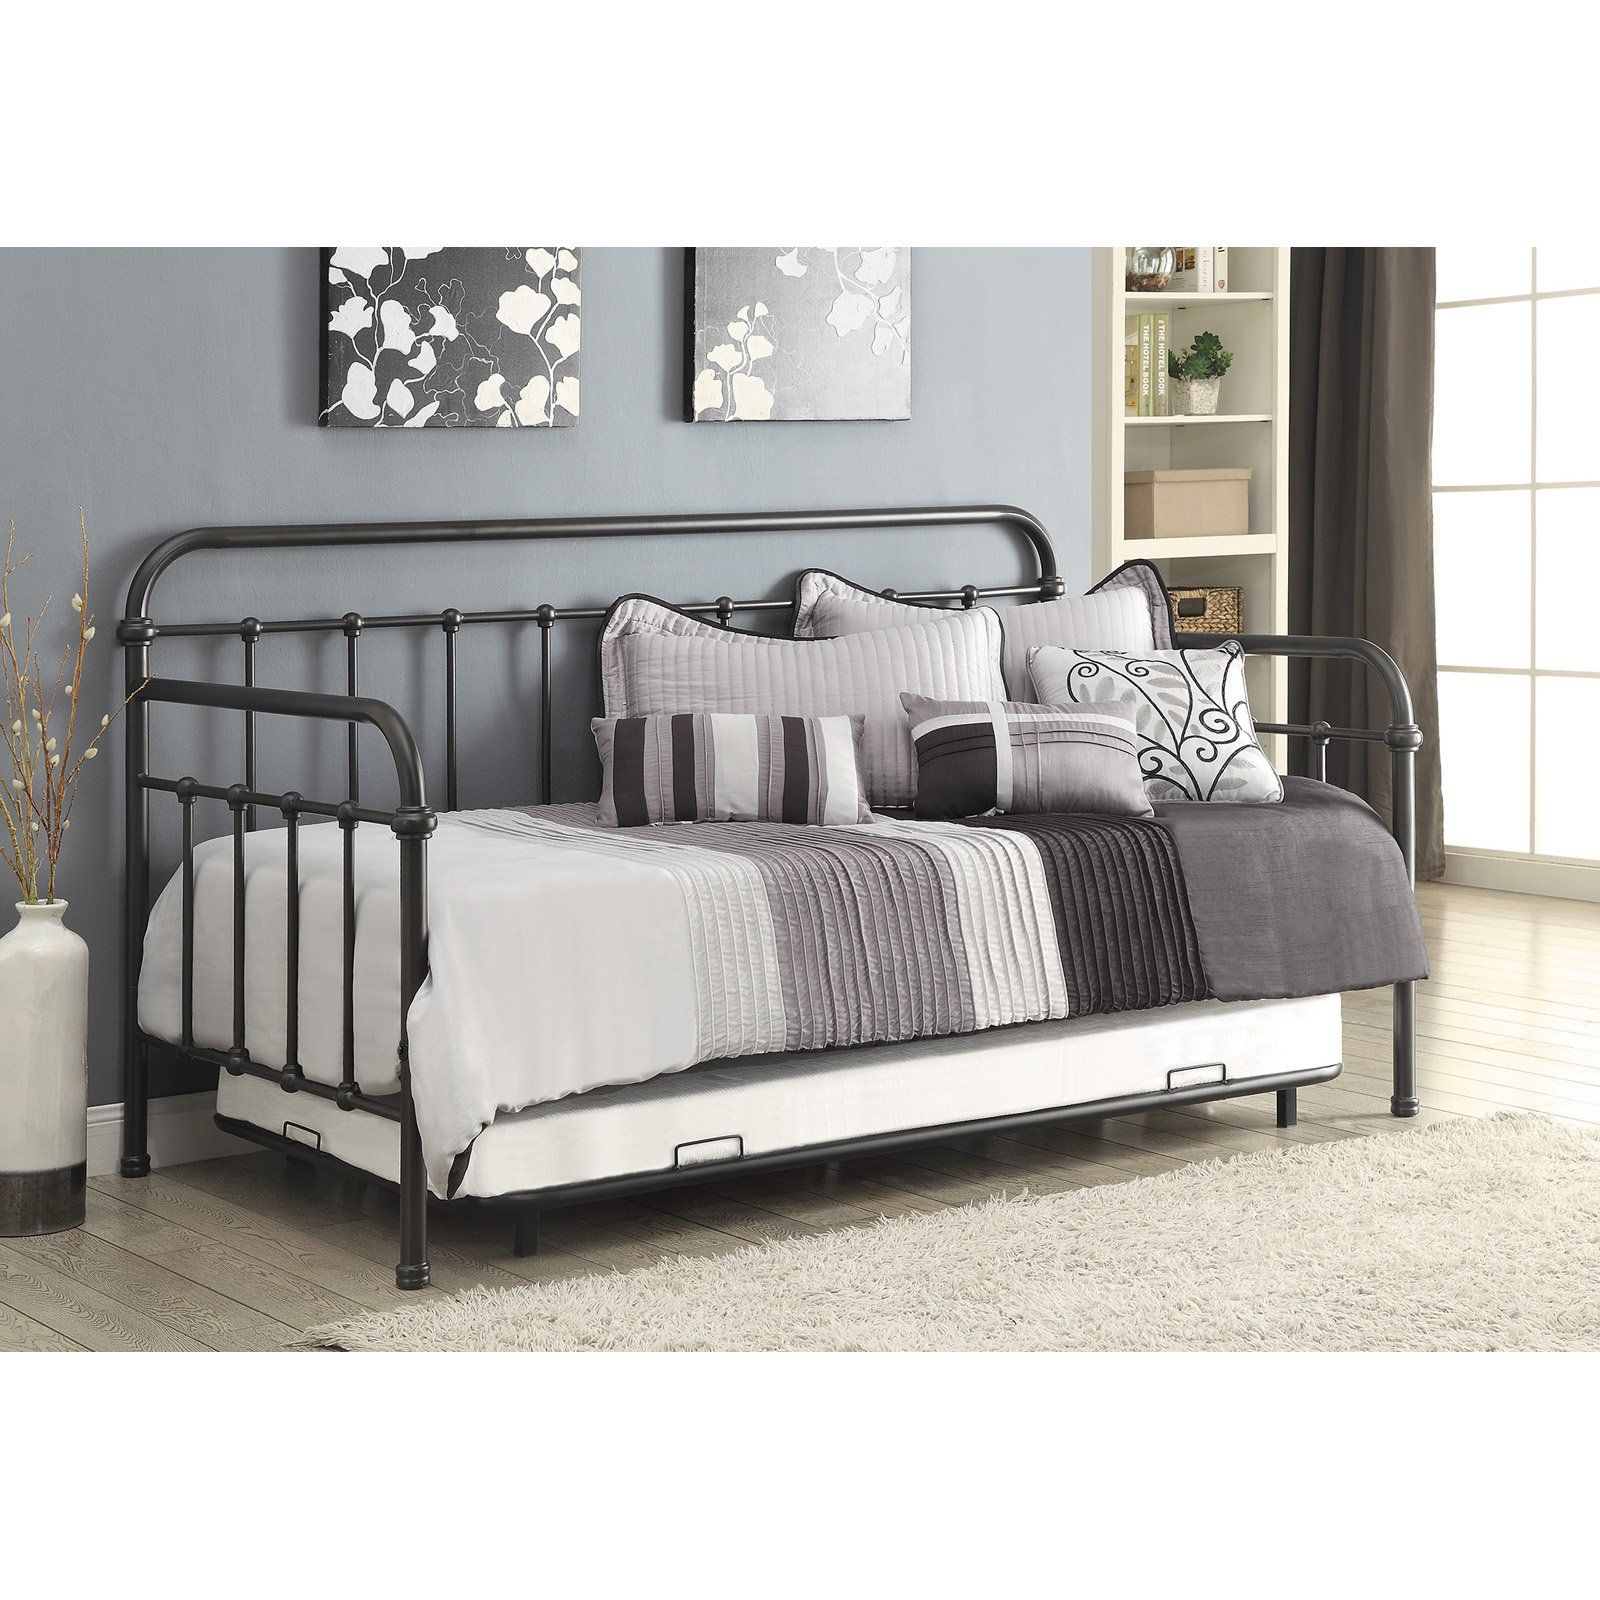 Coaster Furniture Twin Metal Daybed With Trundle Daybed With